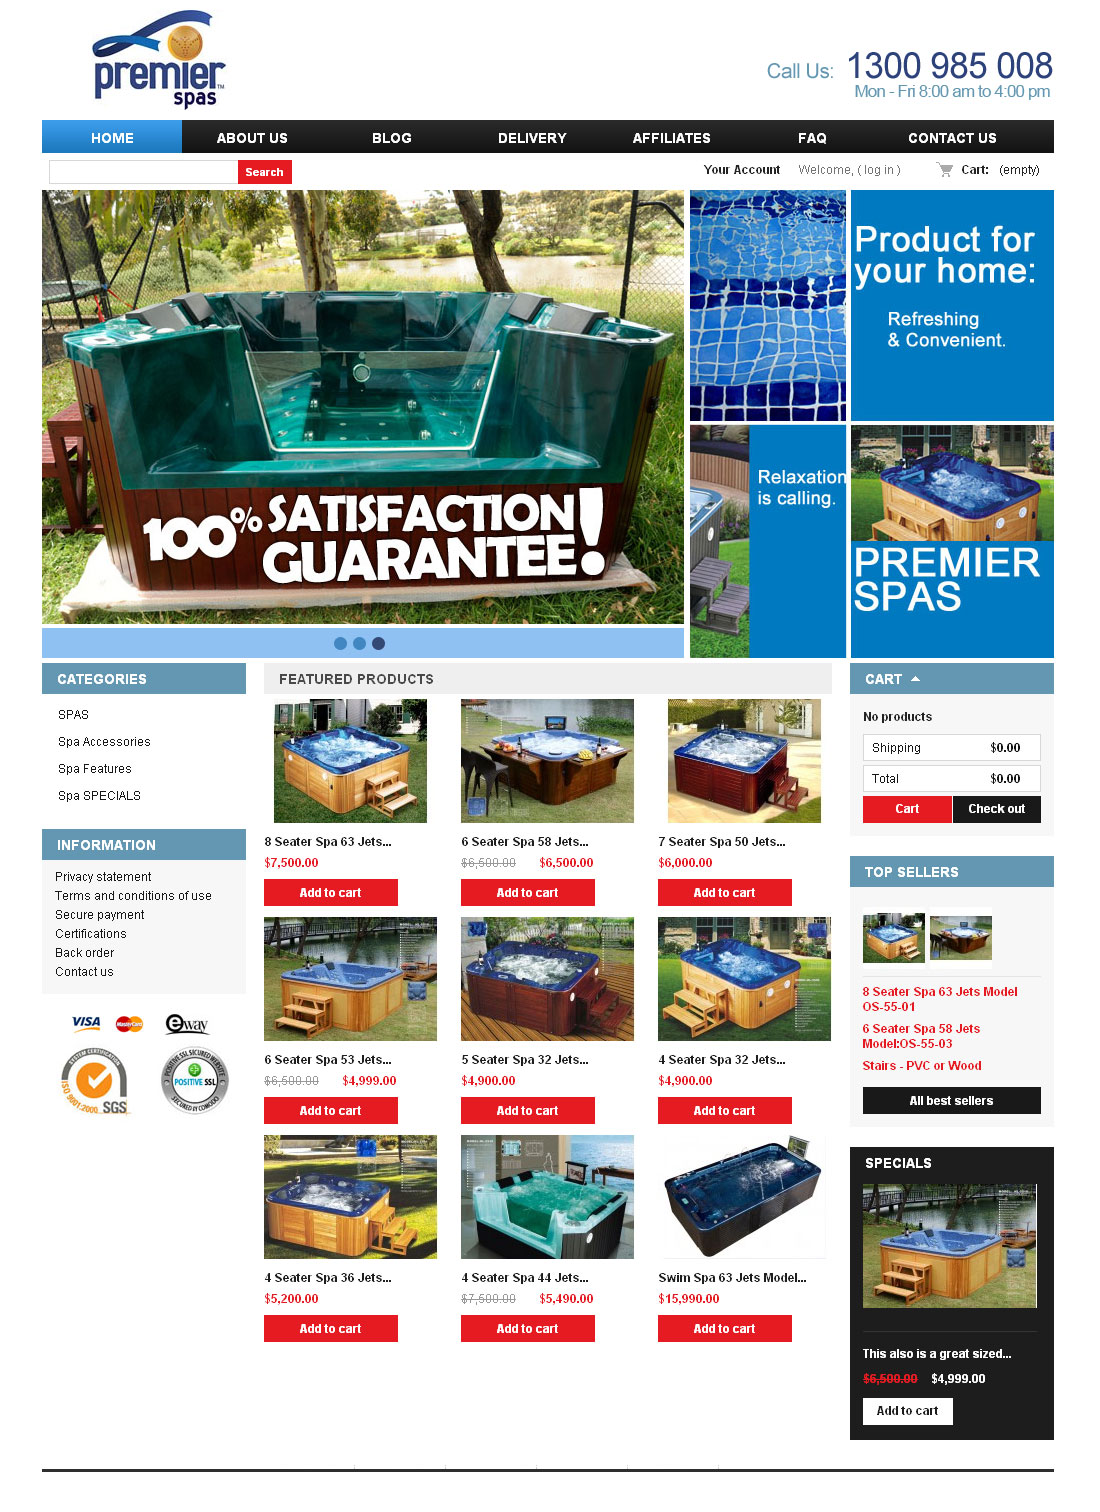 E-commerce outdoor spa website design Melbourne